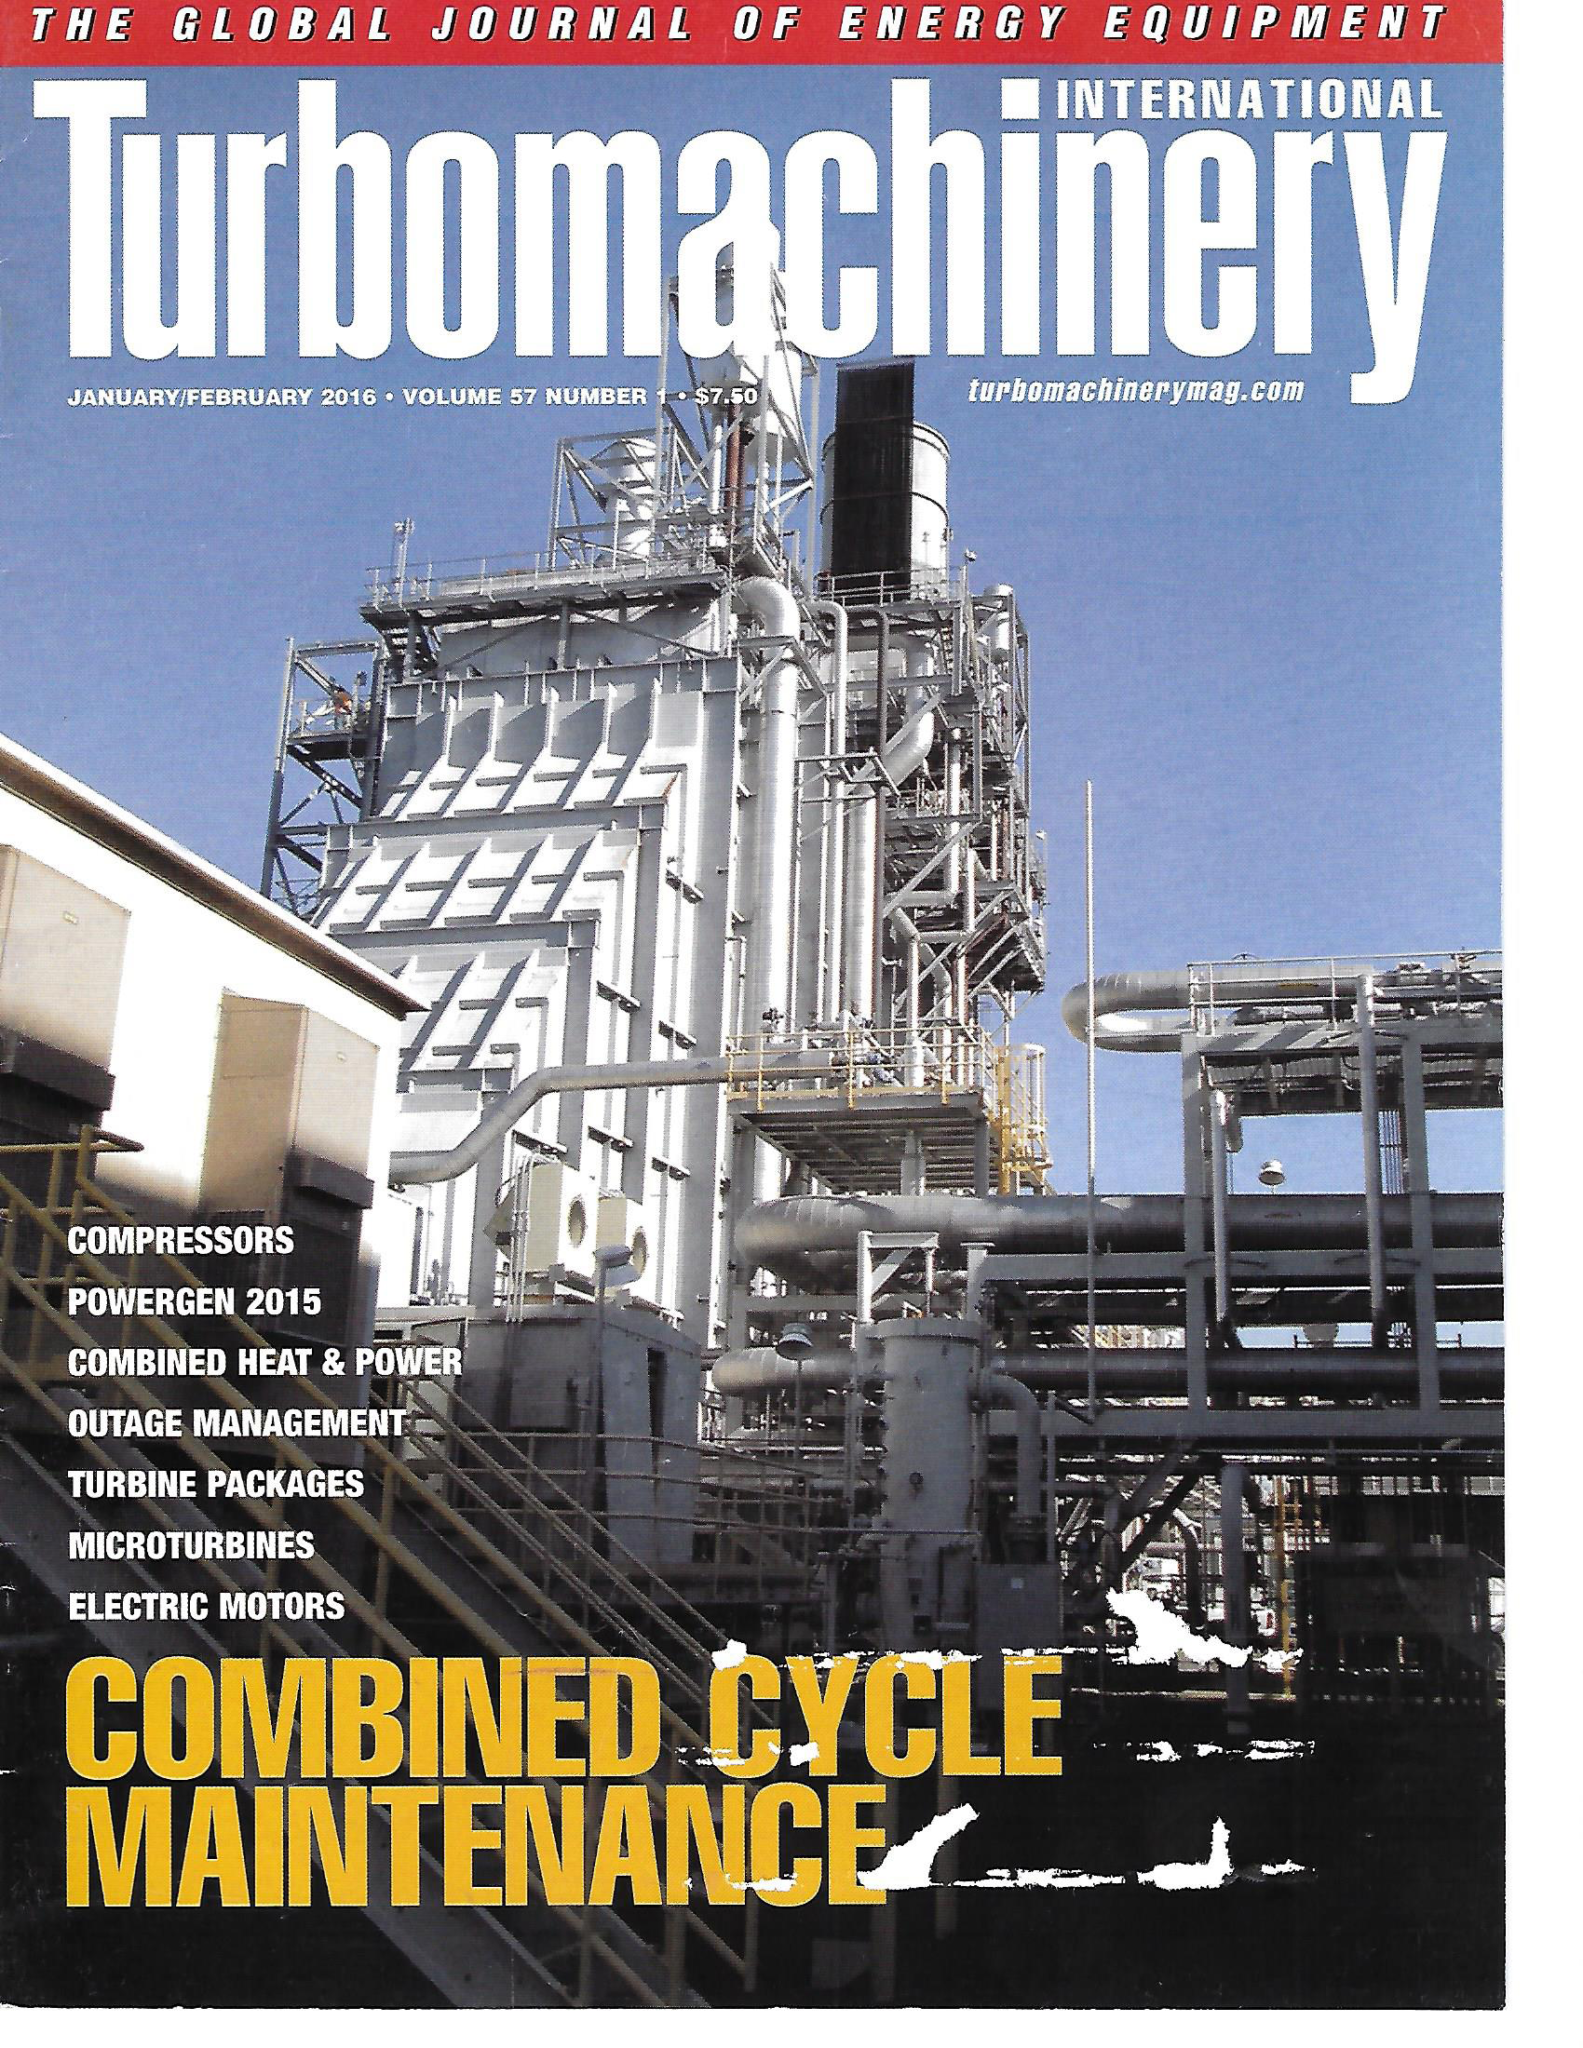 TurboMachinery International Mag Civer Feb 2016 with Isothermal Compression